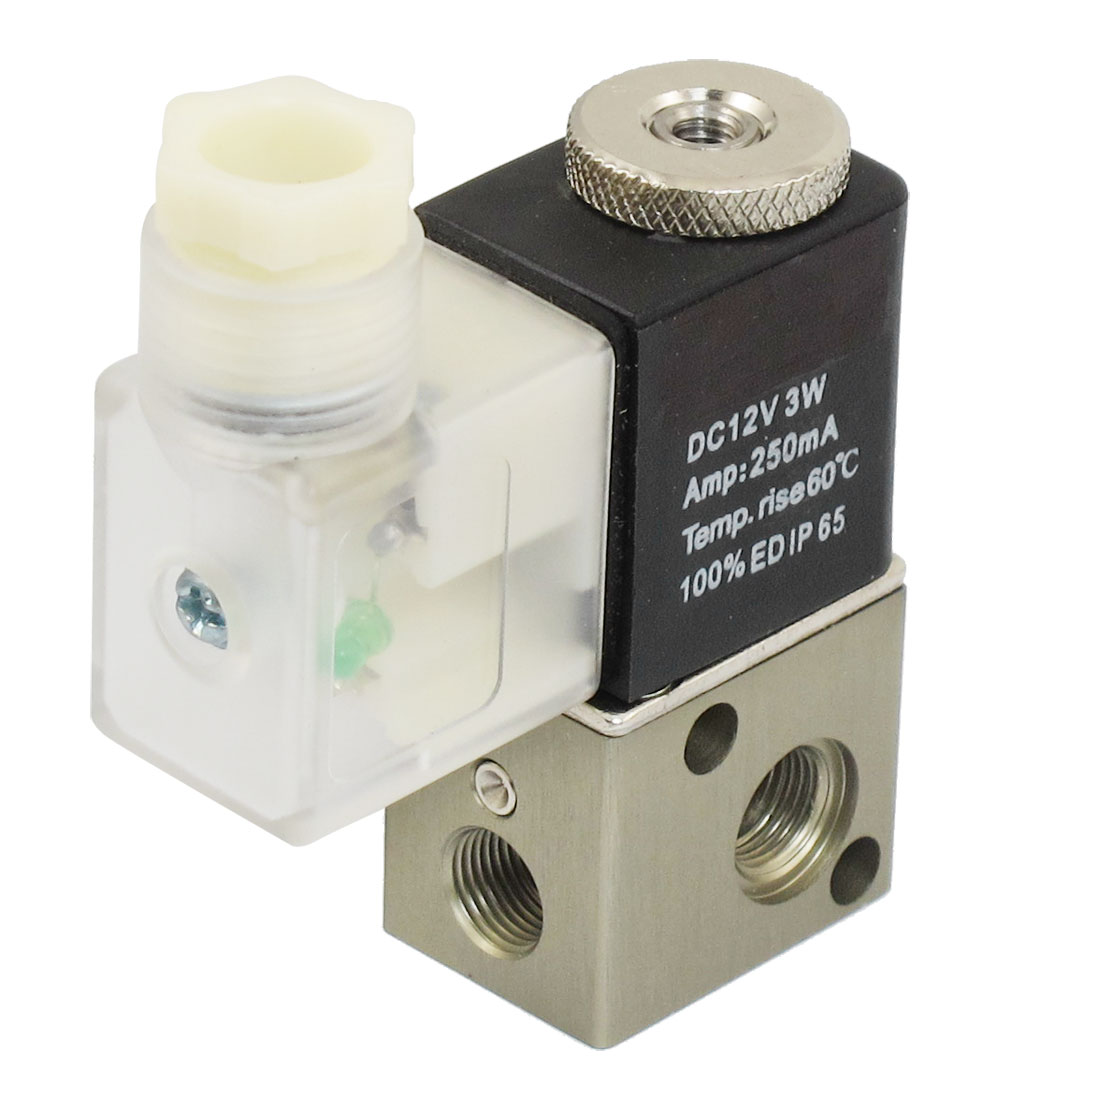 DC 12V 3W 250mA 2 Position 3 Way Pneumatic Electromagnetic Solenoid Valve G1/8""